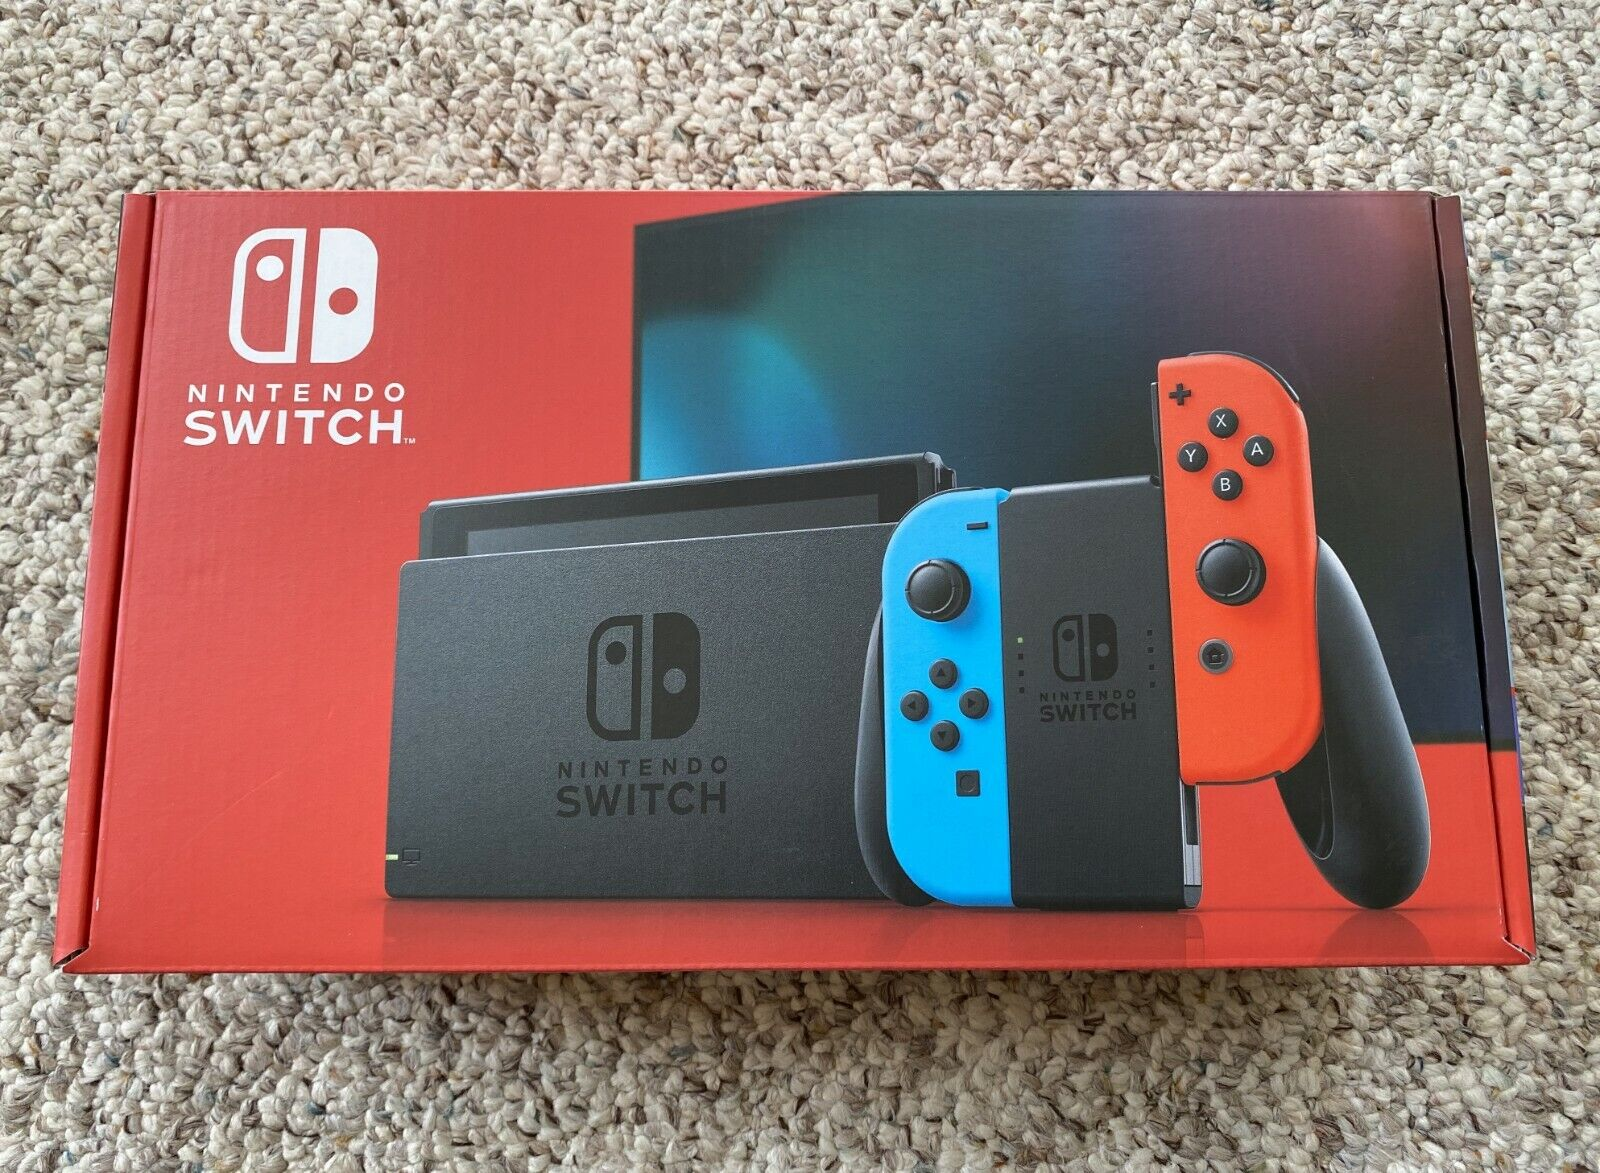 IN HAND Nintendo Switch V2 Neon Red and Blue Joy-Con Console Brand New Sealed!